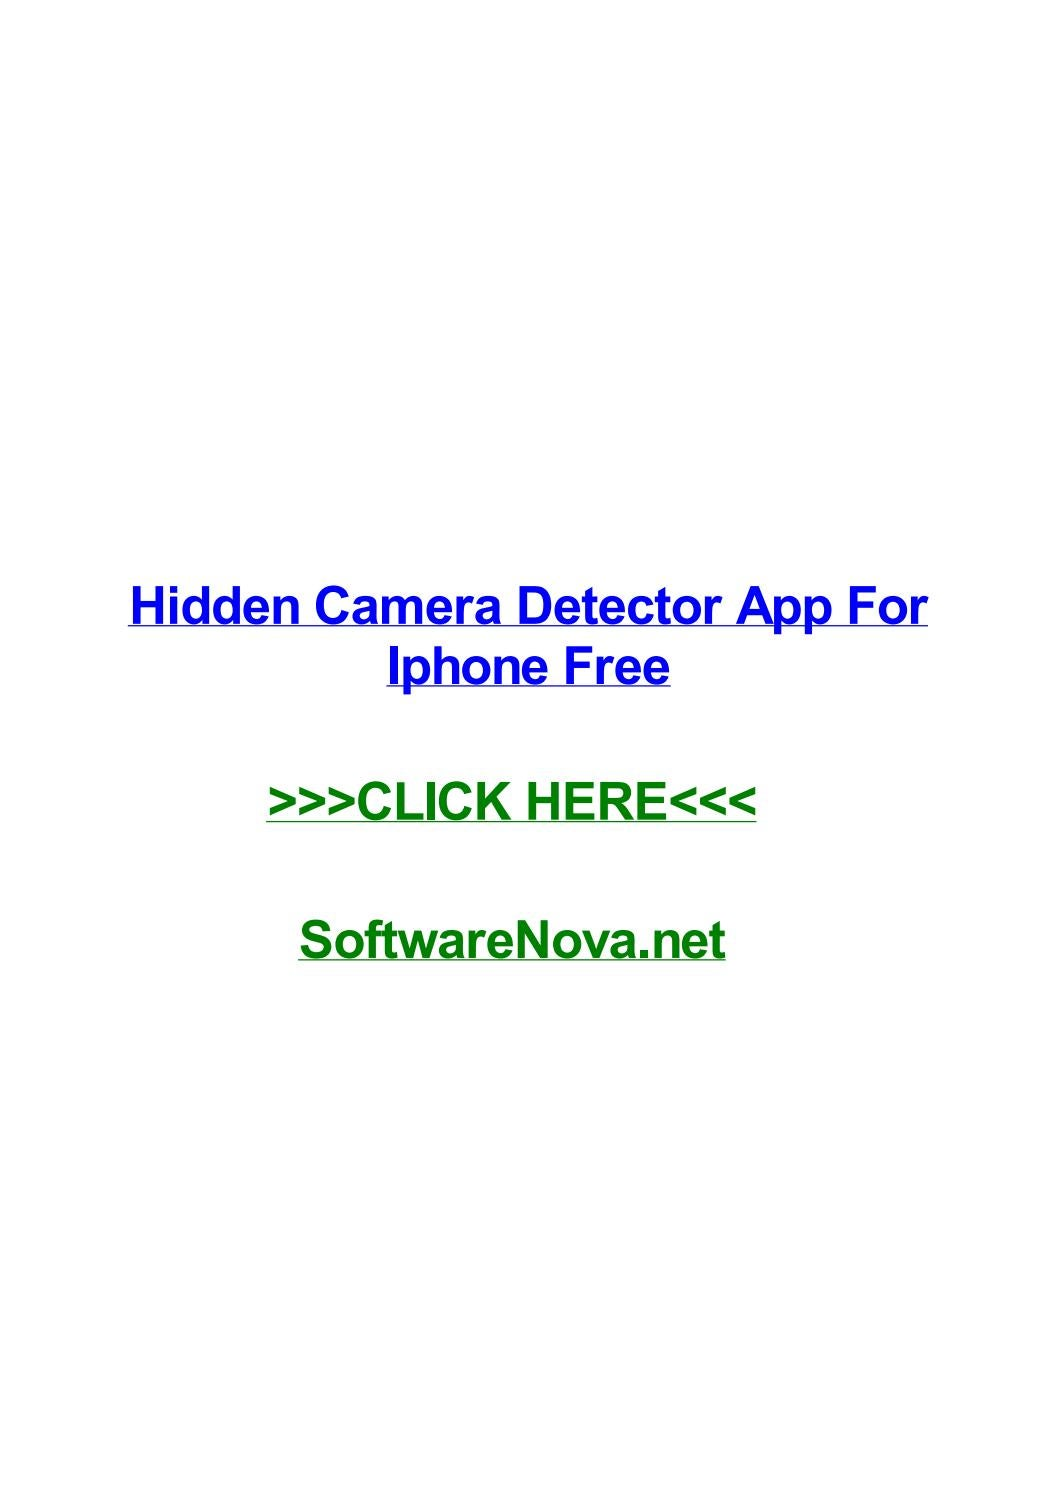 Hidden camera detector app for iphone free by melissapprm